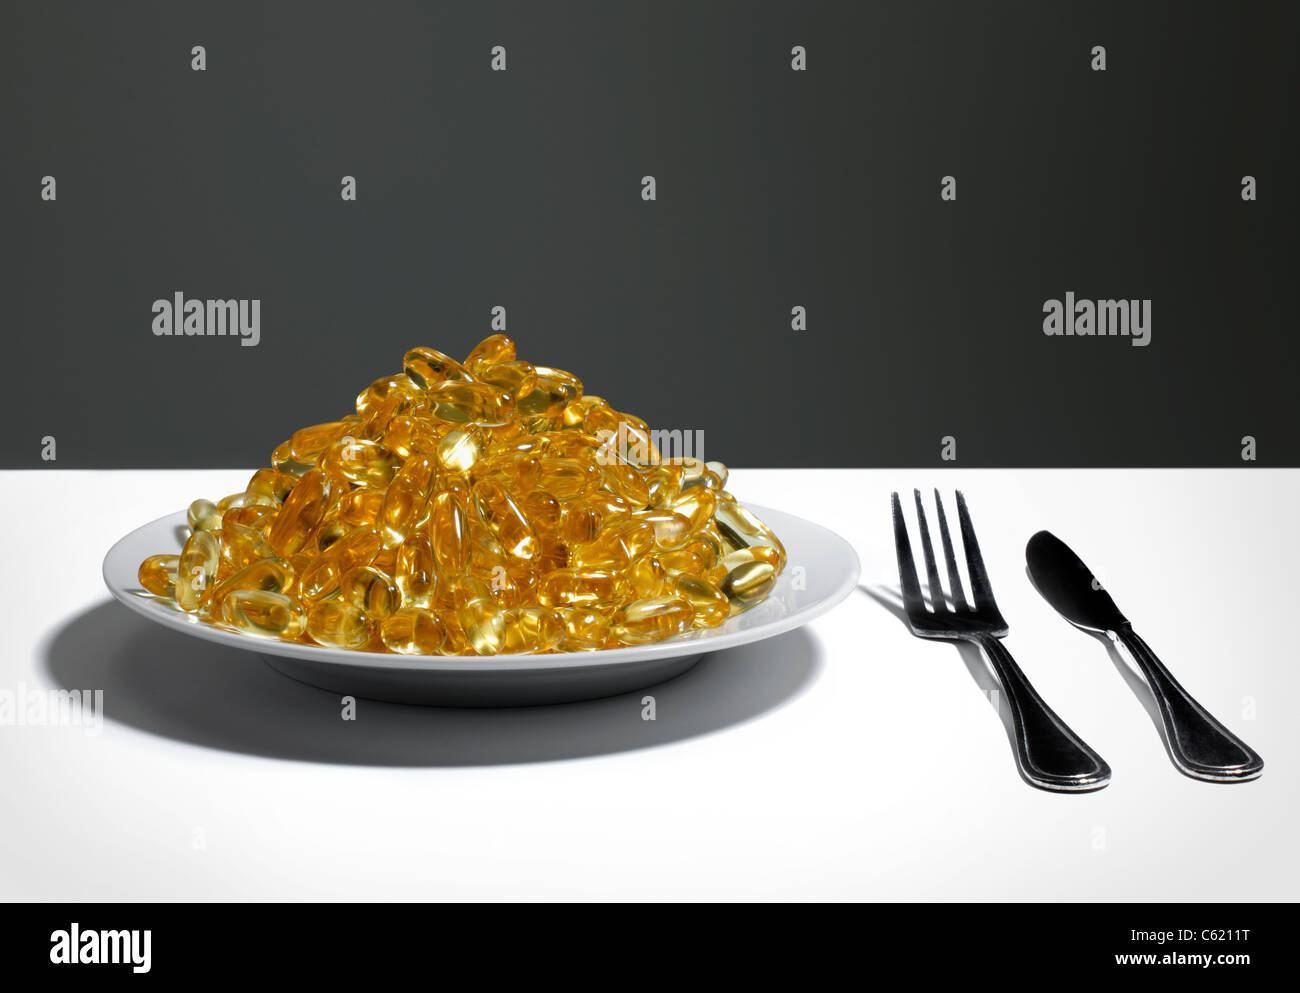 Plate of full of Vitamin E or Fish oil capsules - Stock Image